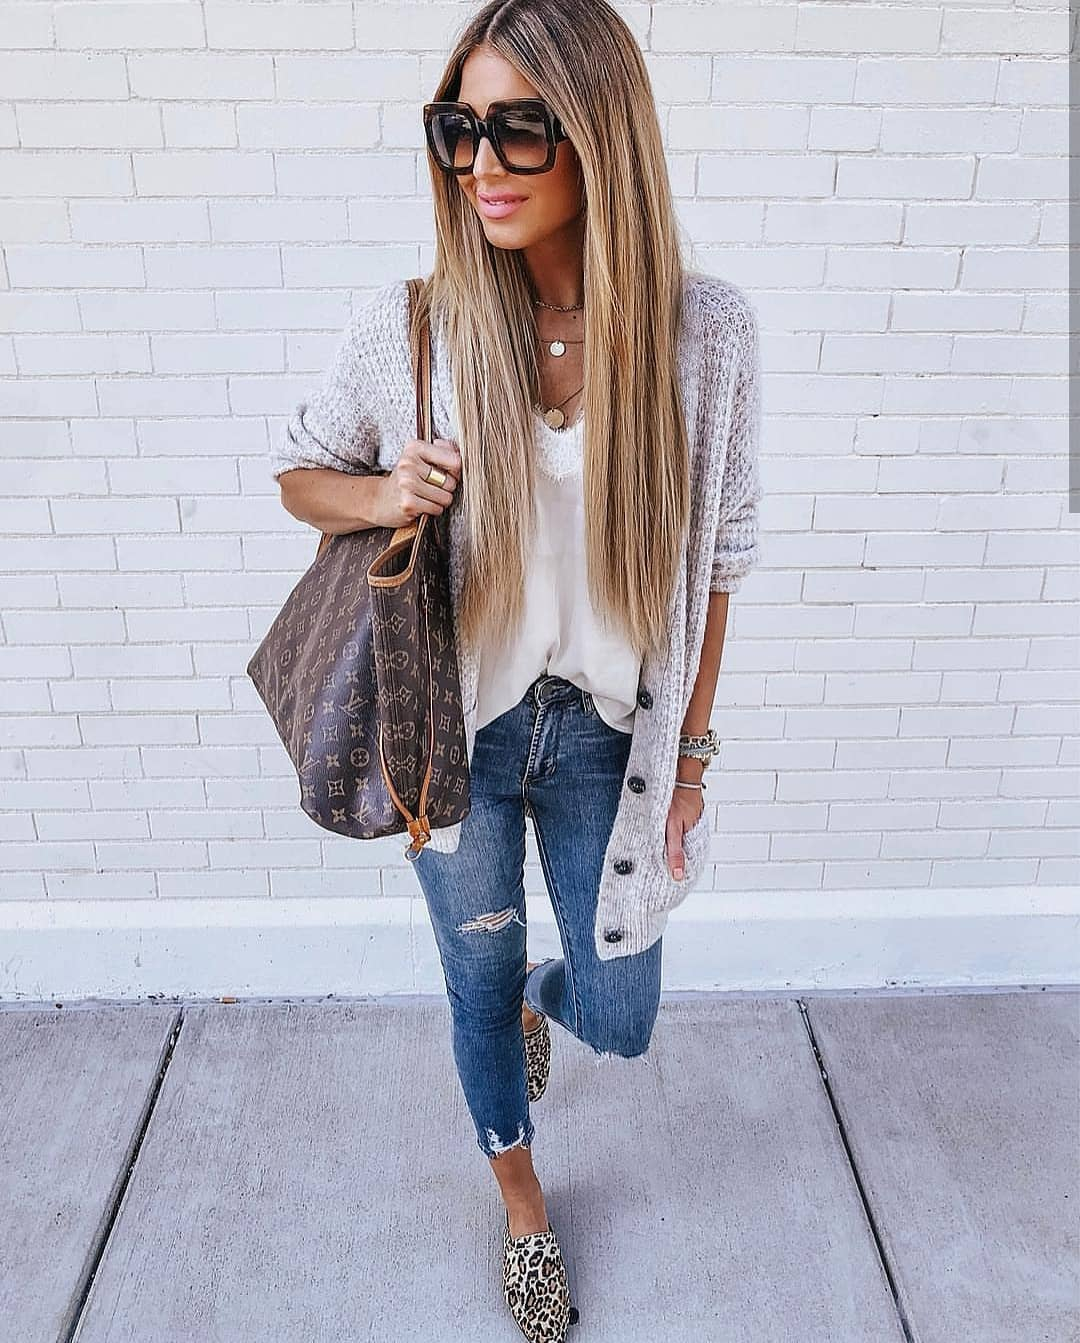 Lightweight Long Cardigan With White Slip Tank Top And Jeans  For Summer 2019